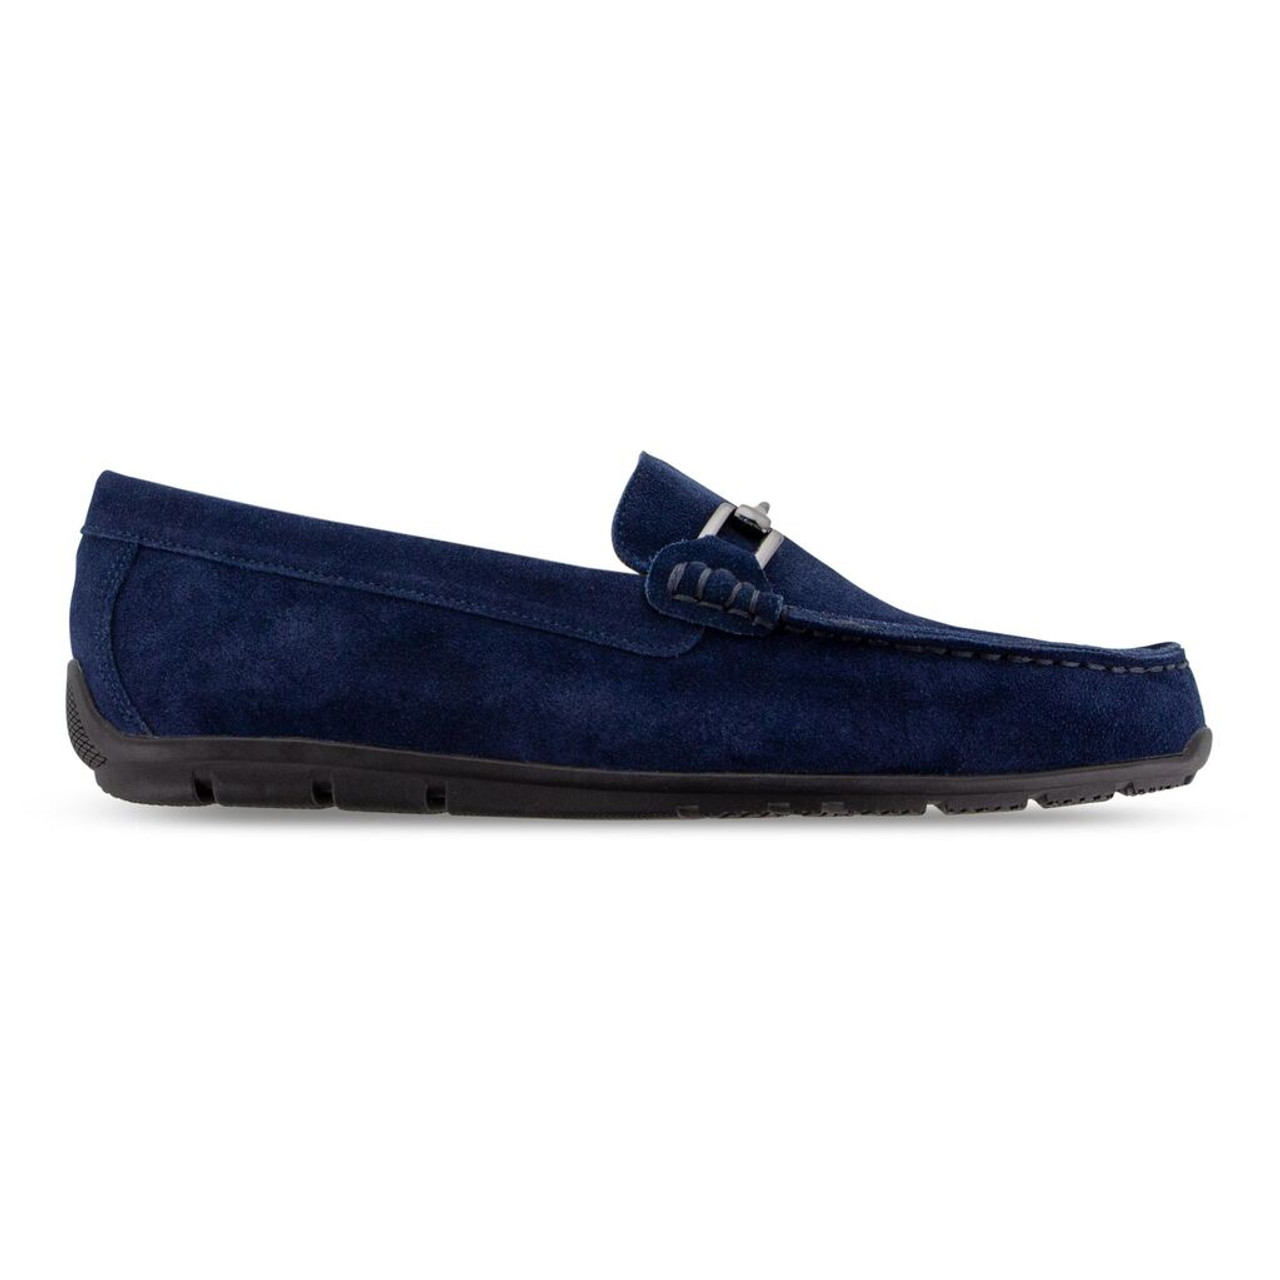 FootJoy Club Casuals Suede Loafers - Blue Suede (79062)